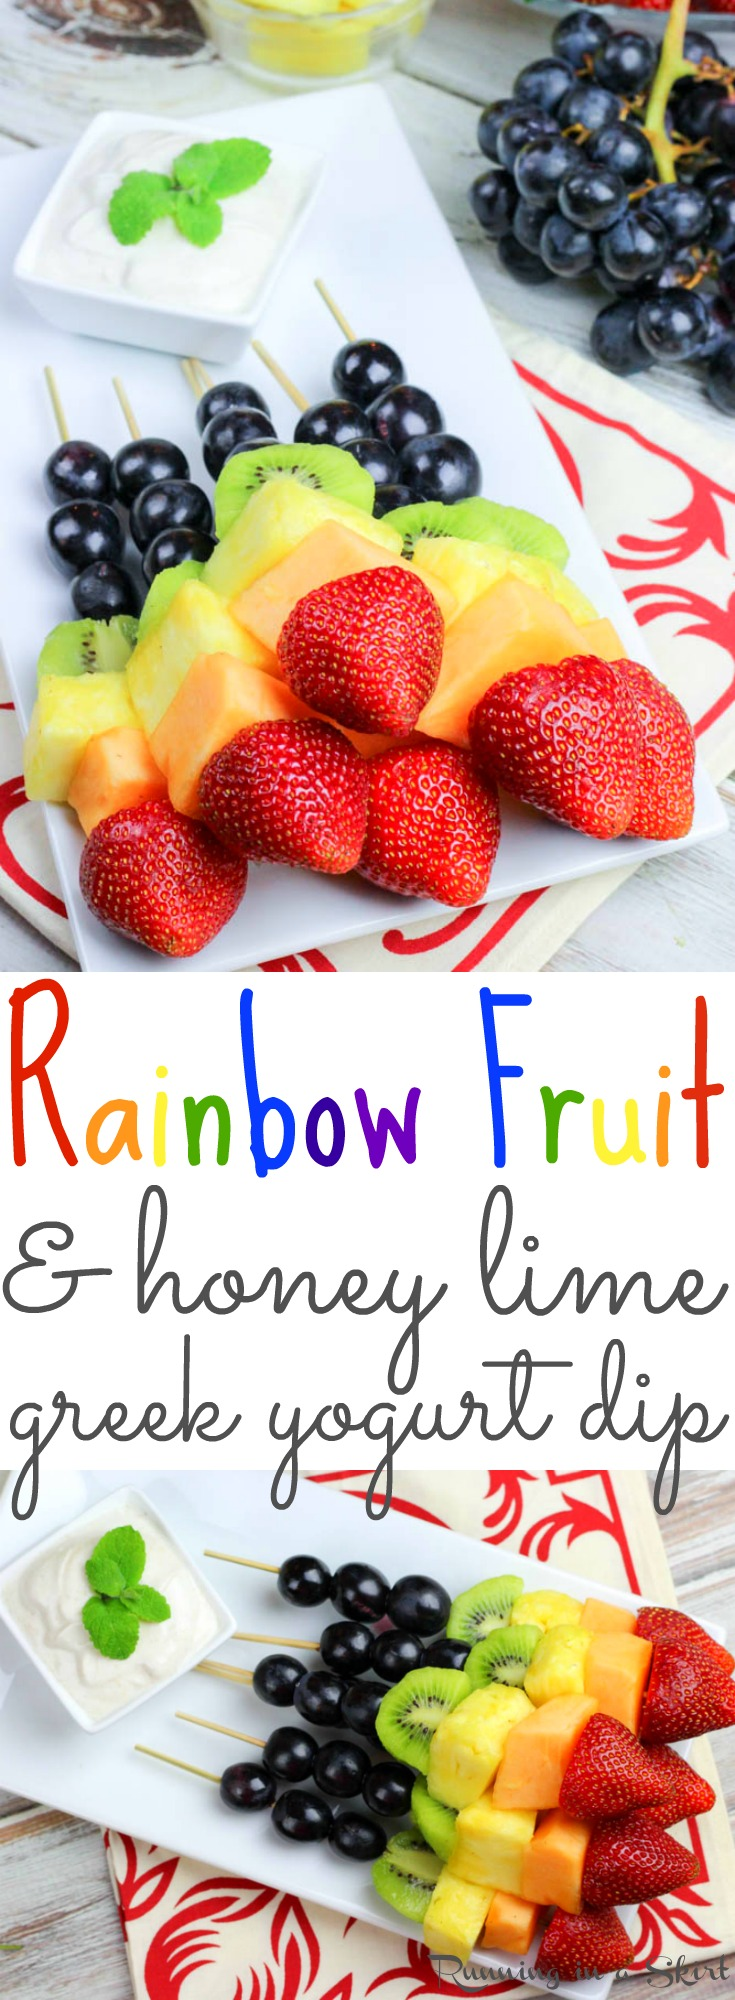 Rainbow Fruit Skewers recipe with Healthy Greek Yogurt Dip- the perfect fun kabobs snack ideas for a summer parties or St. Patrick's Day. Includes two dips desserts- Honey Almond Dip and Honey Lime Dip. / Running in a Skirt via @juliewunder